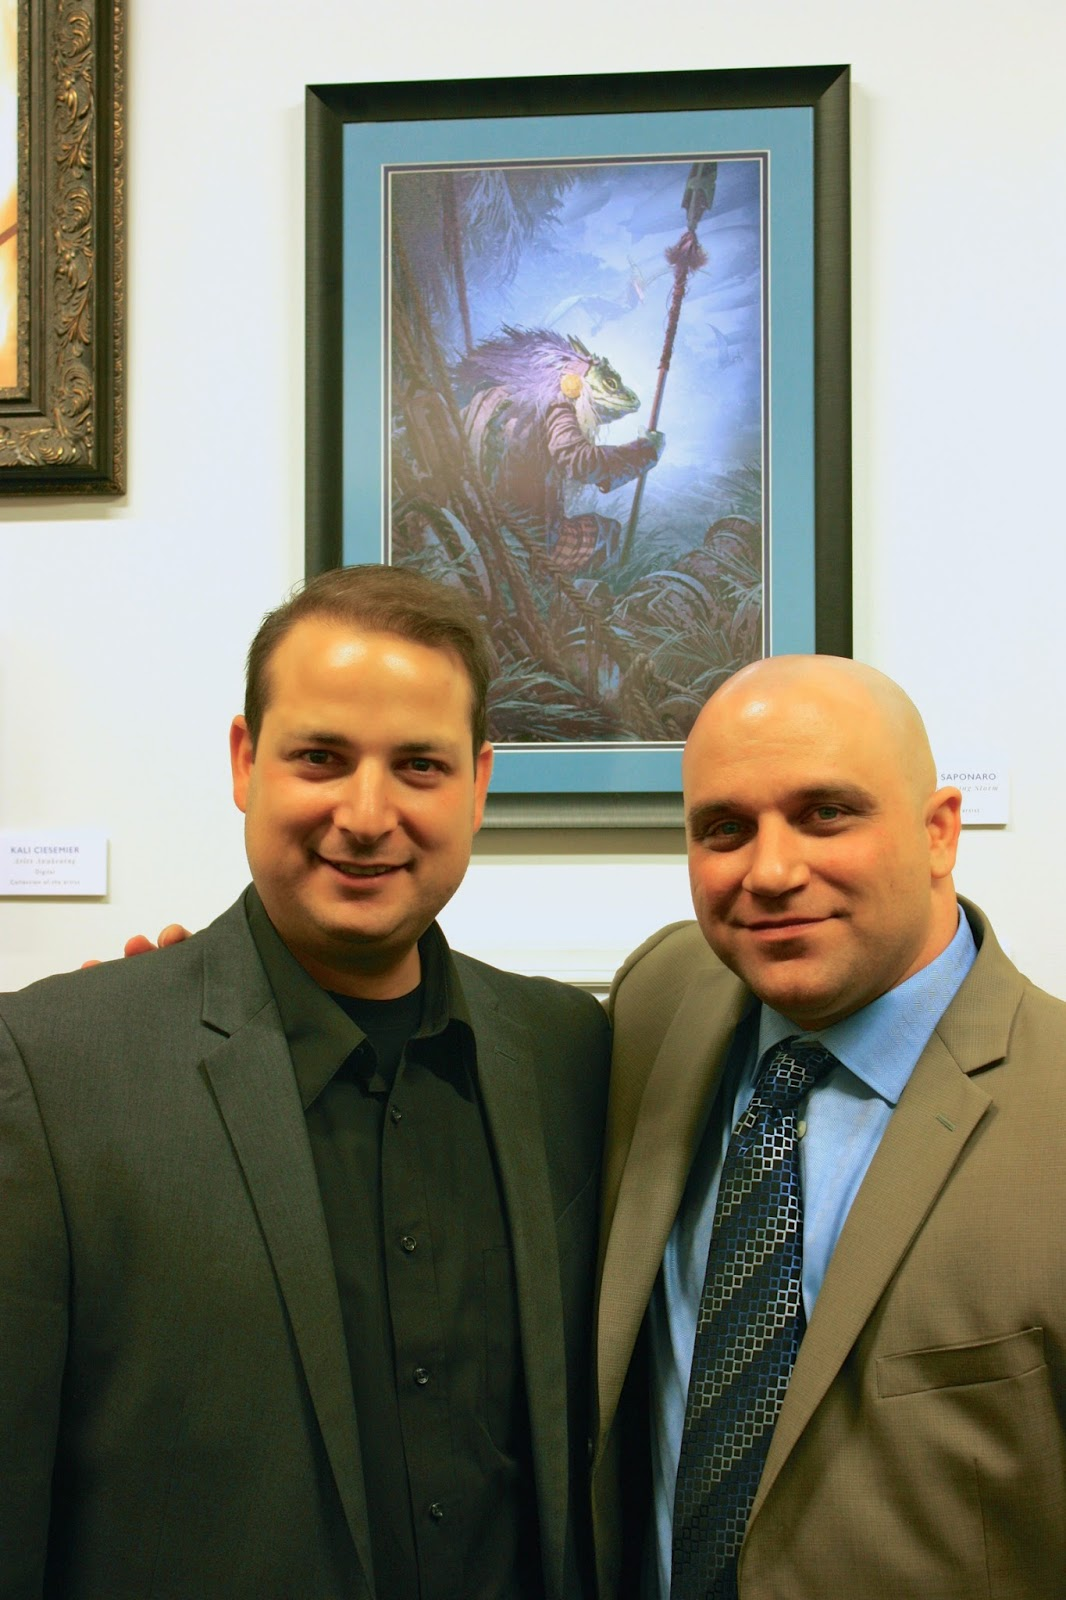 Art director Matthew Kalamidas and me in front of my painting. This is the guy that really deserves the credit. An awesome art director that knows how to get the best out of his artists!